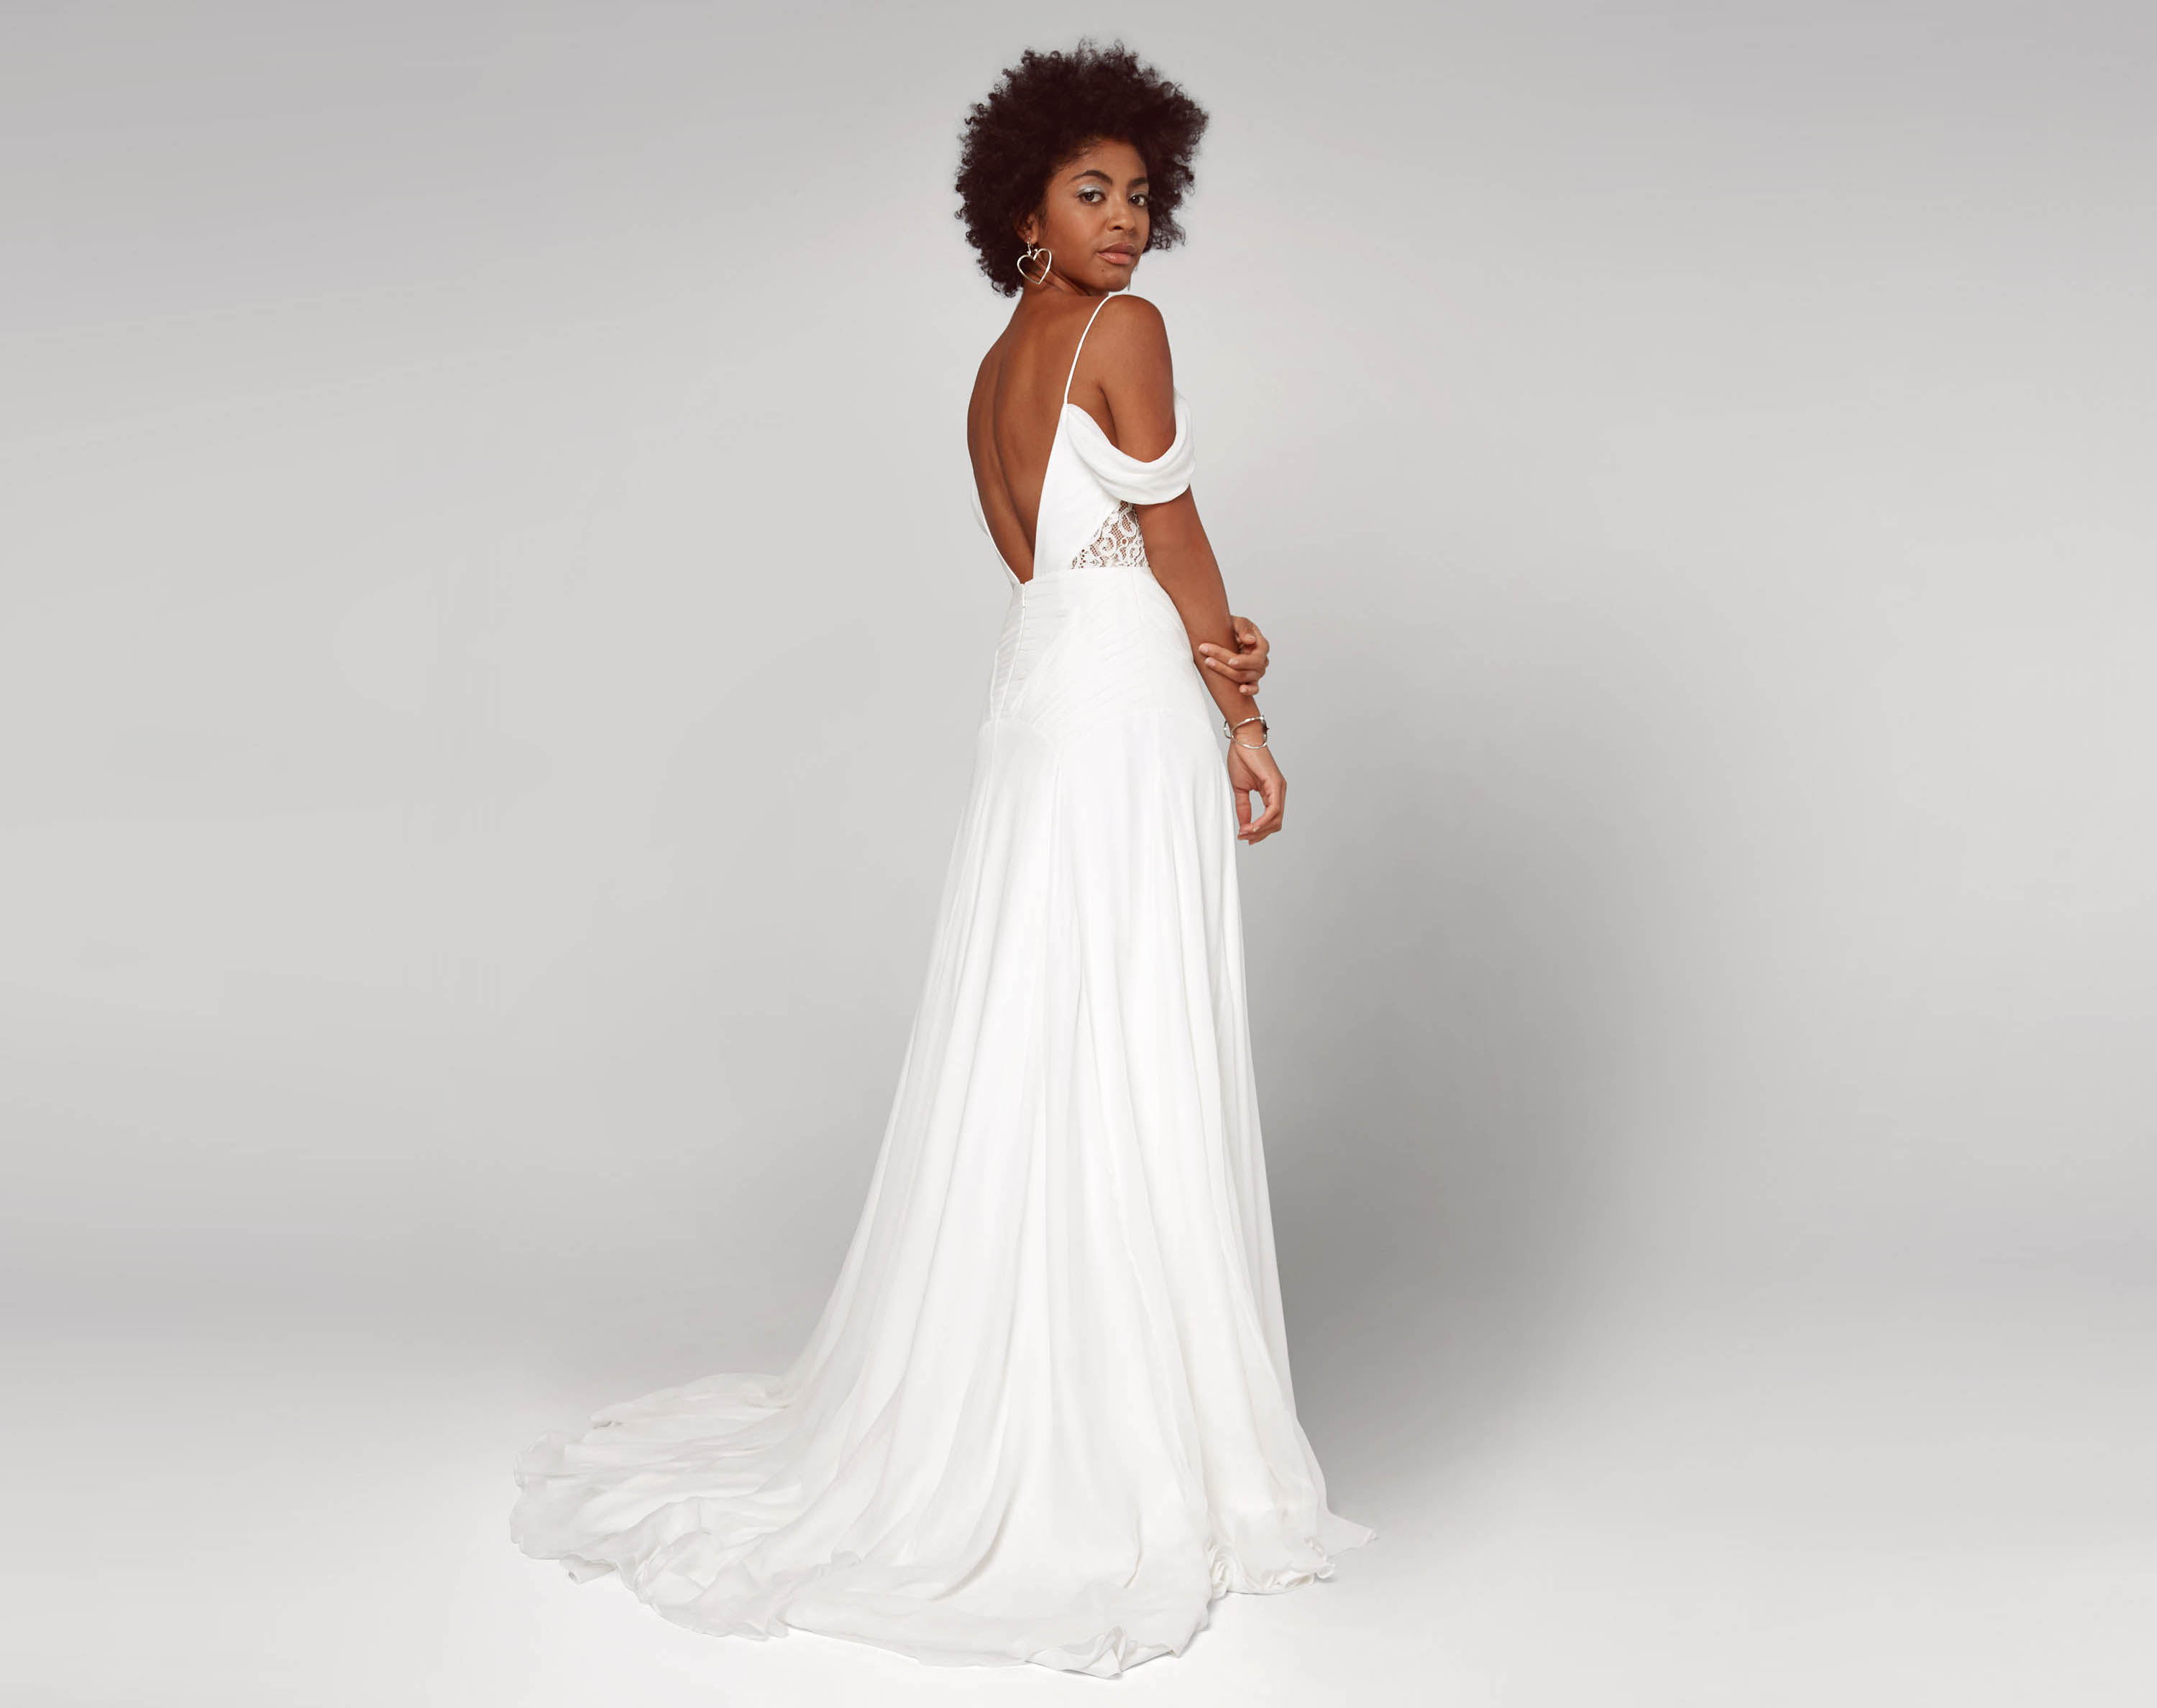 A Model Wearing White Wedding Gown With An Open Back Thin Straps And